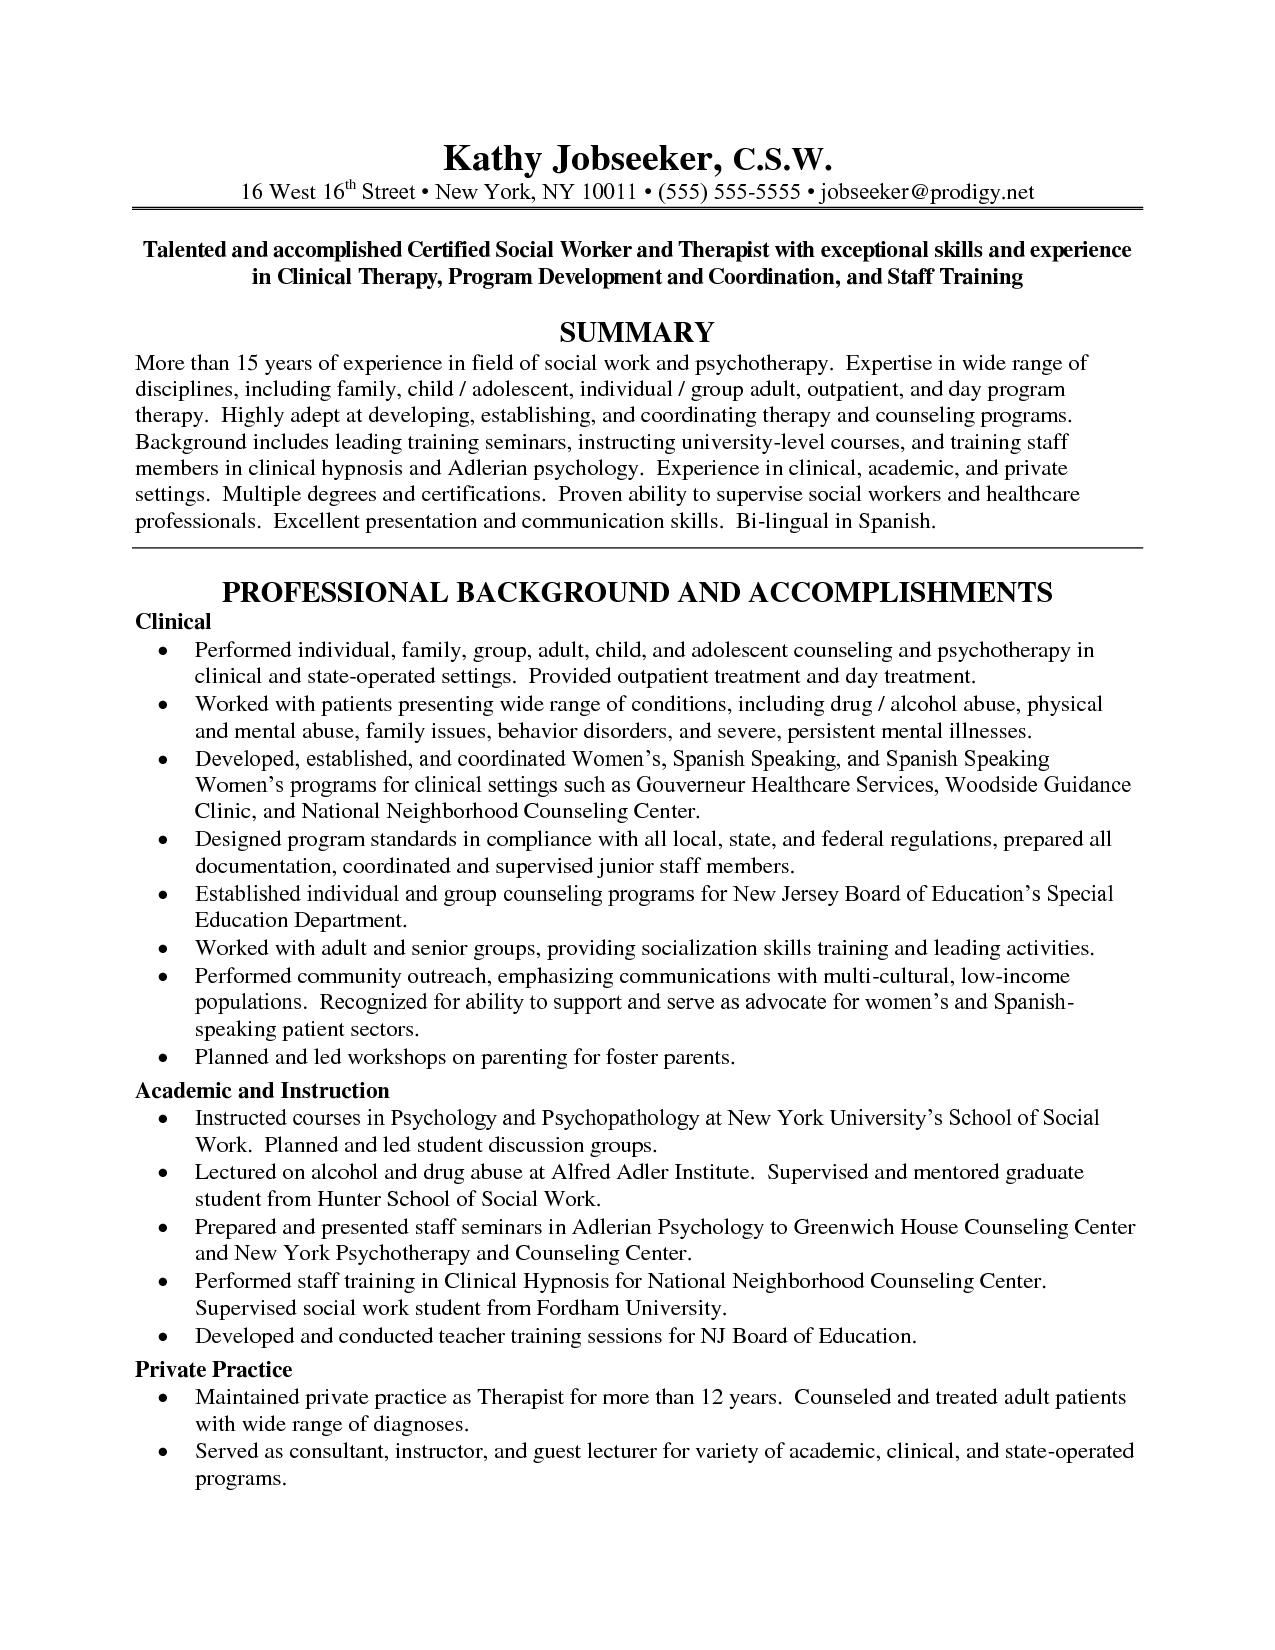 Social Work Resume Sample Social Work Resume Examples Social Work Resume With License Social